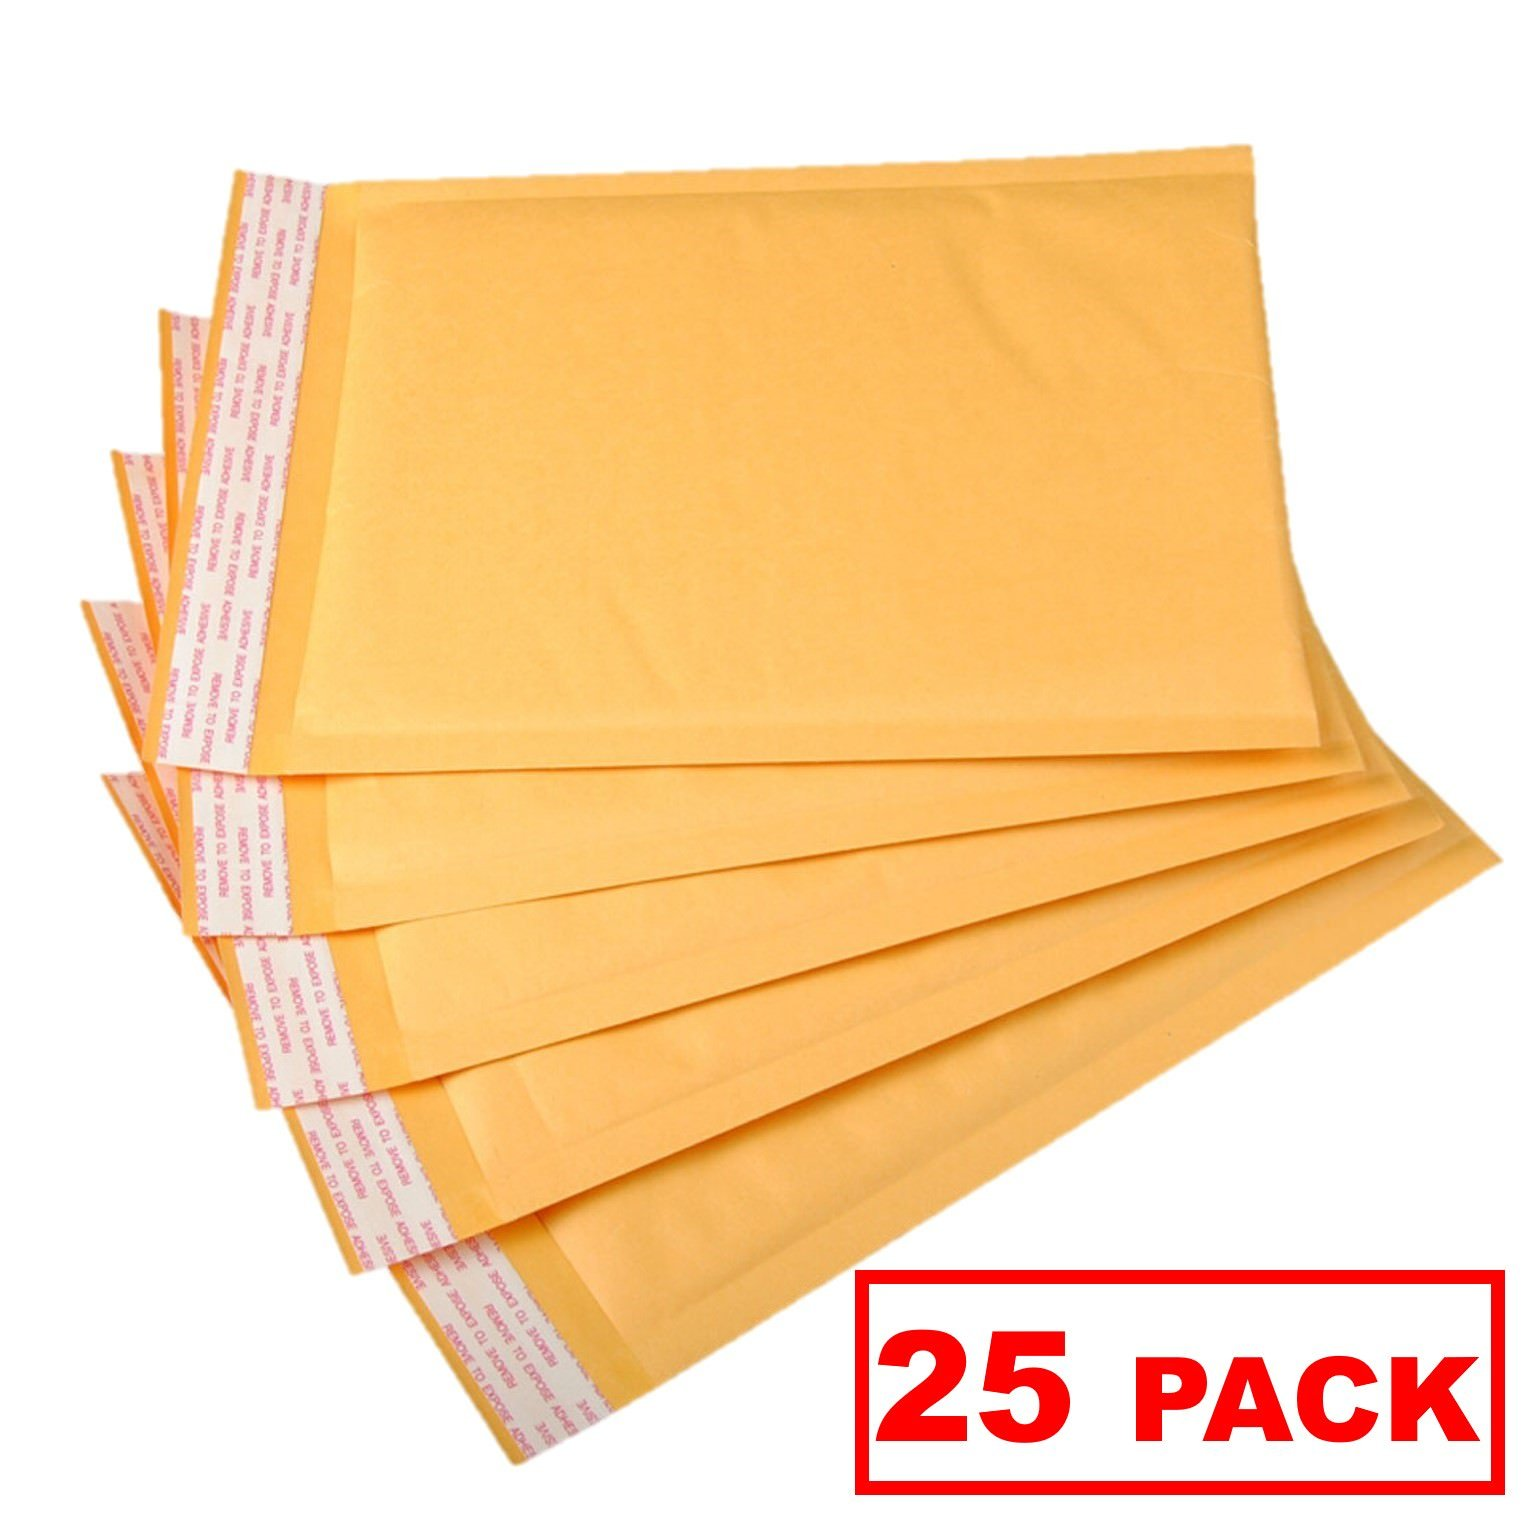 OfficeKit Kraft Bubble Mailers #5 10.5X16 inches Shipping Padded Envelopes Self Seal Cushioned Mailing Envelope Bags 25 Pack